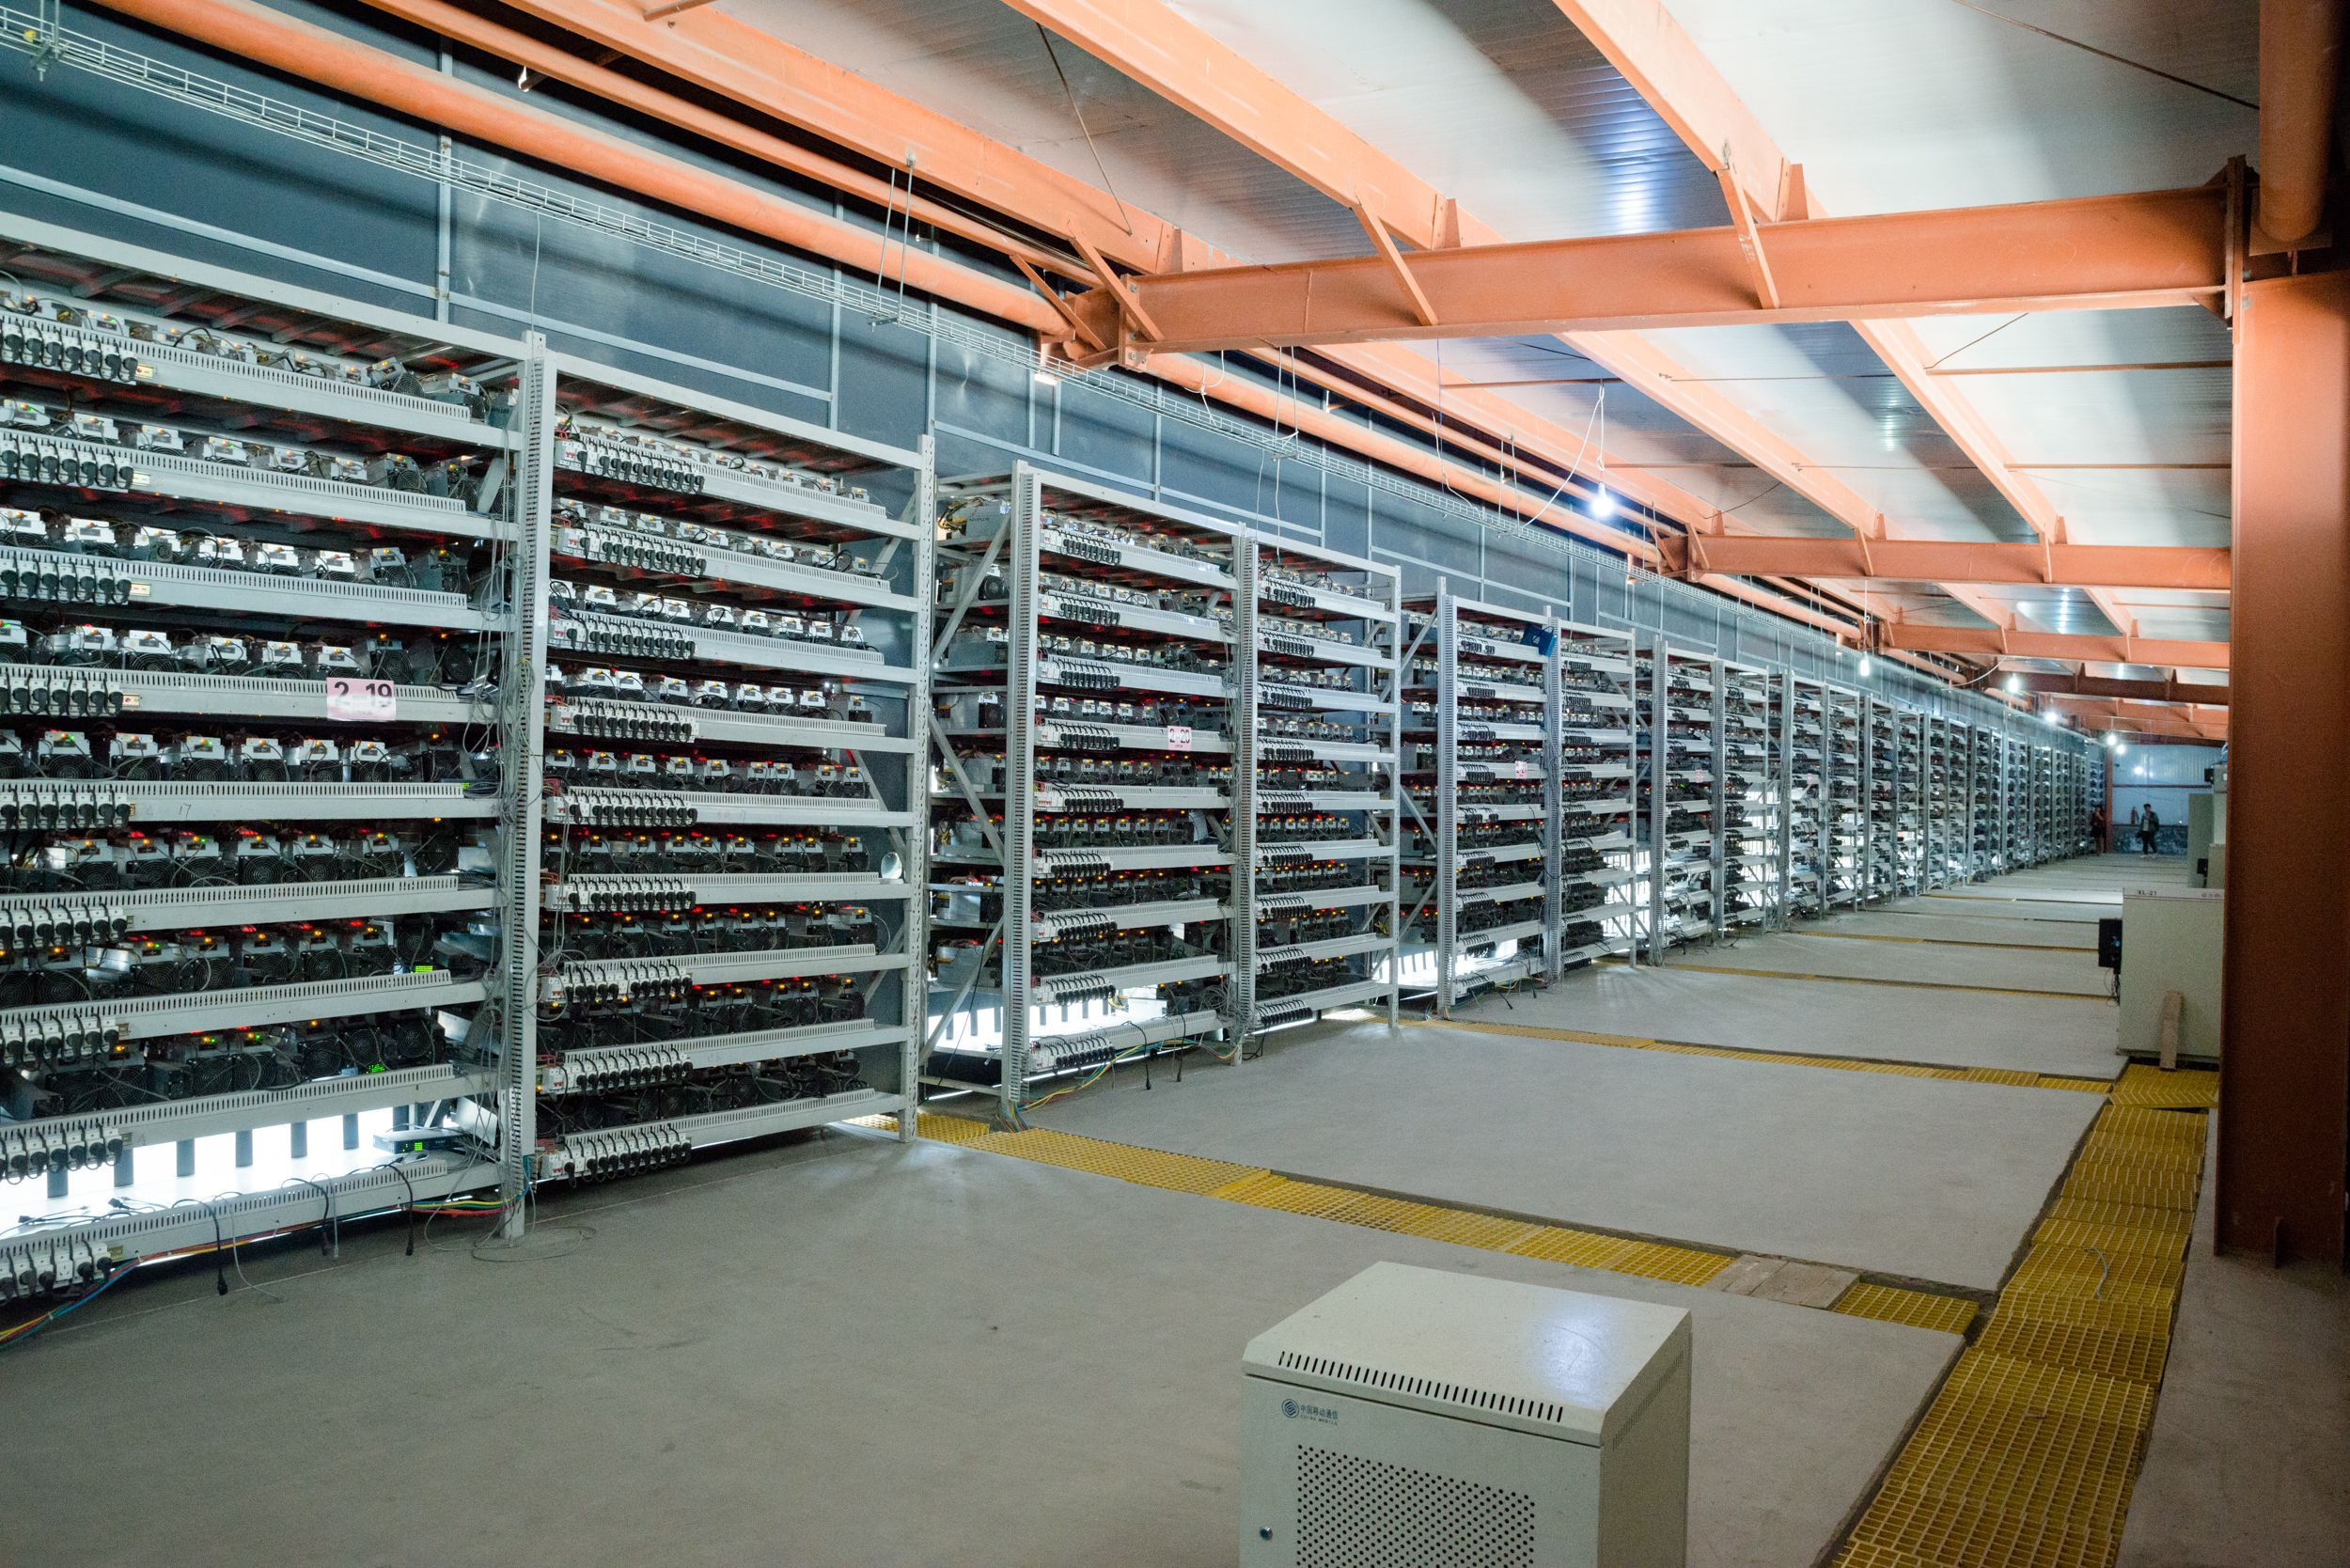 The lives of bitcoin miners digging for digital gold in Inner